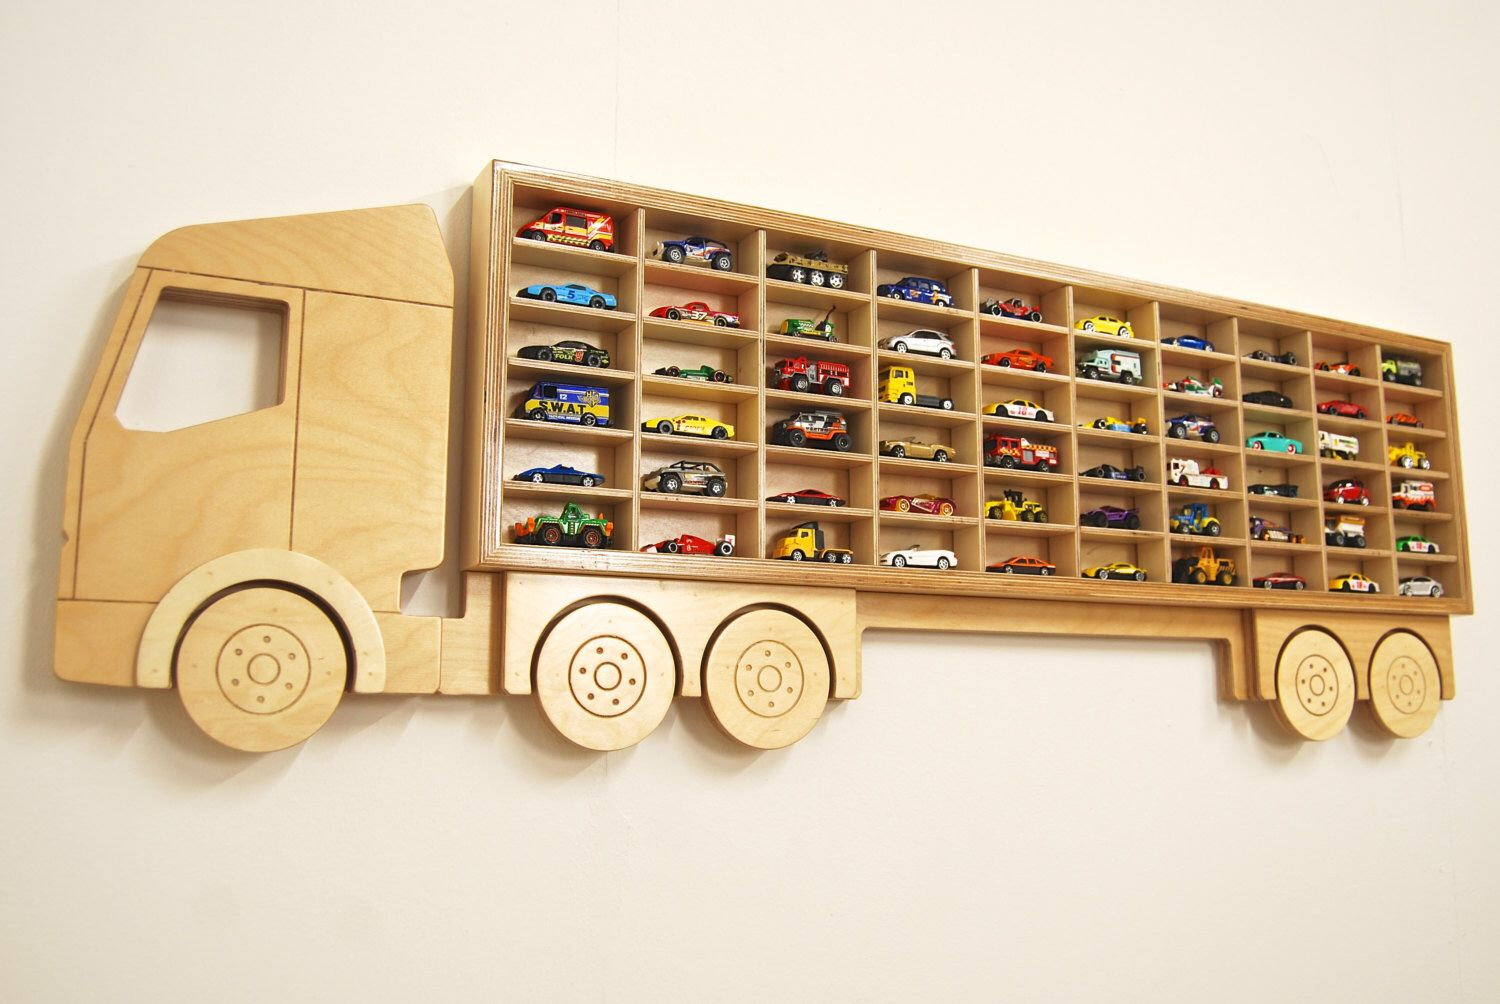 Wooden Toy Car Shelf : Toy car truck shelf model shelving unit lorry